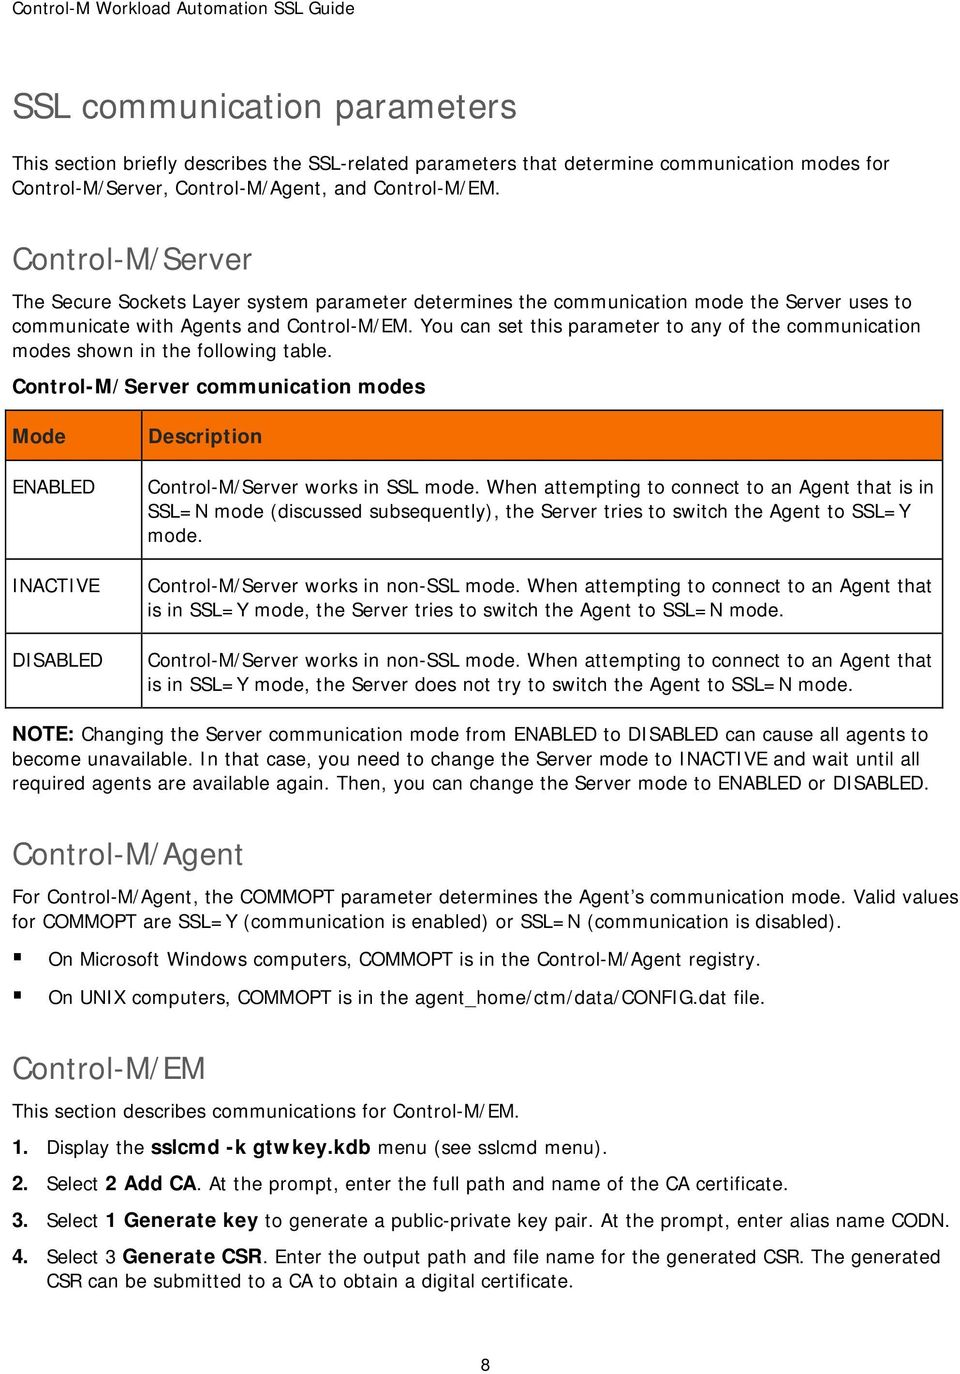 Control-m workload automation ssl guide may pdf.